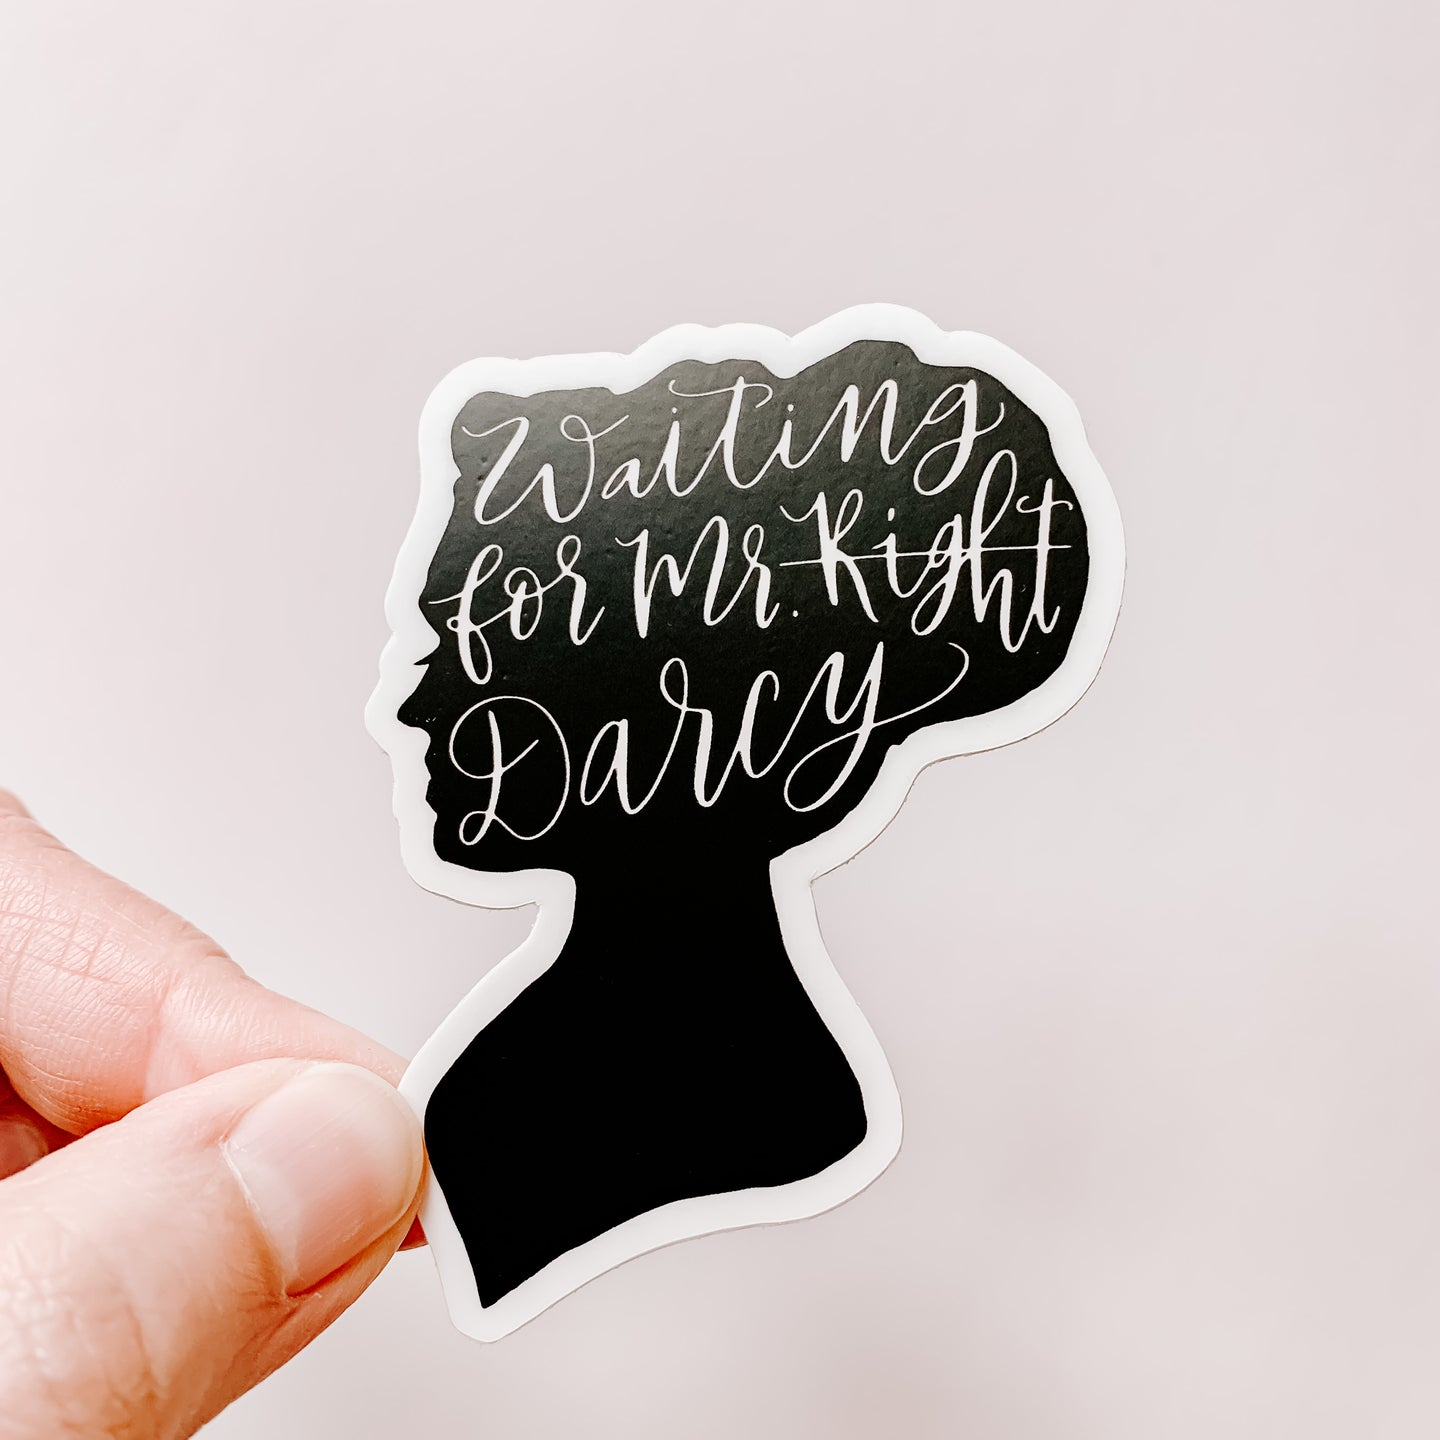 Waiting For Mr Darcy Sticker Decal